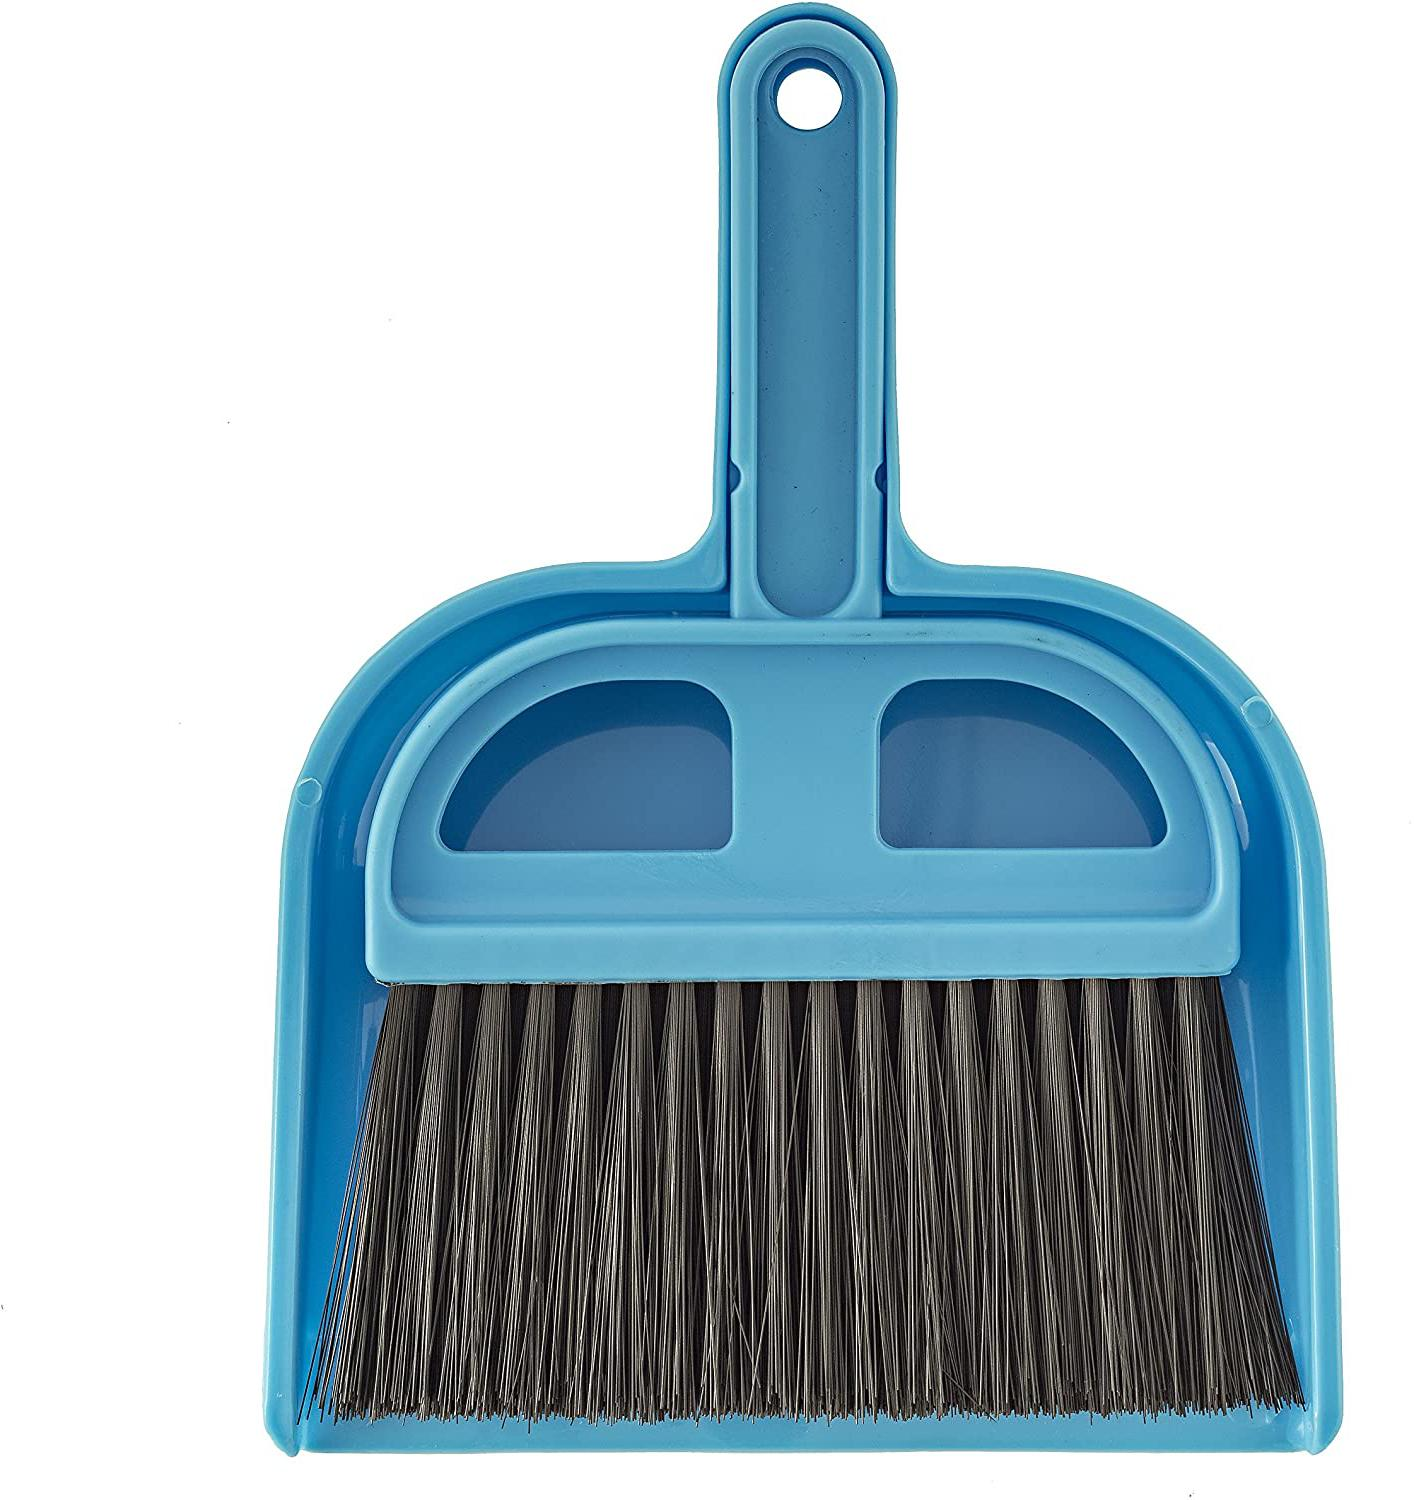 4-in-1 Cleanup For Litter